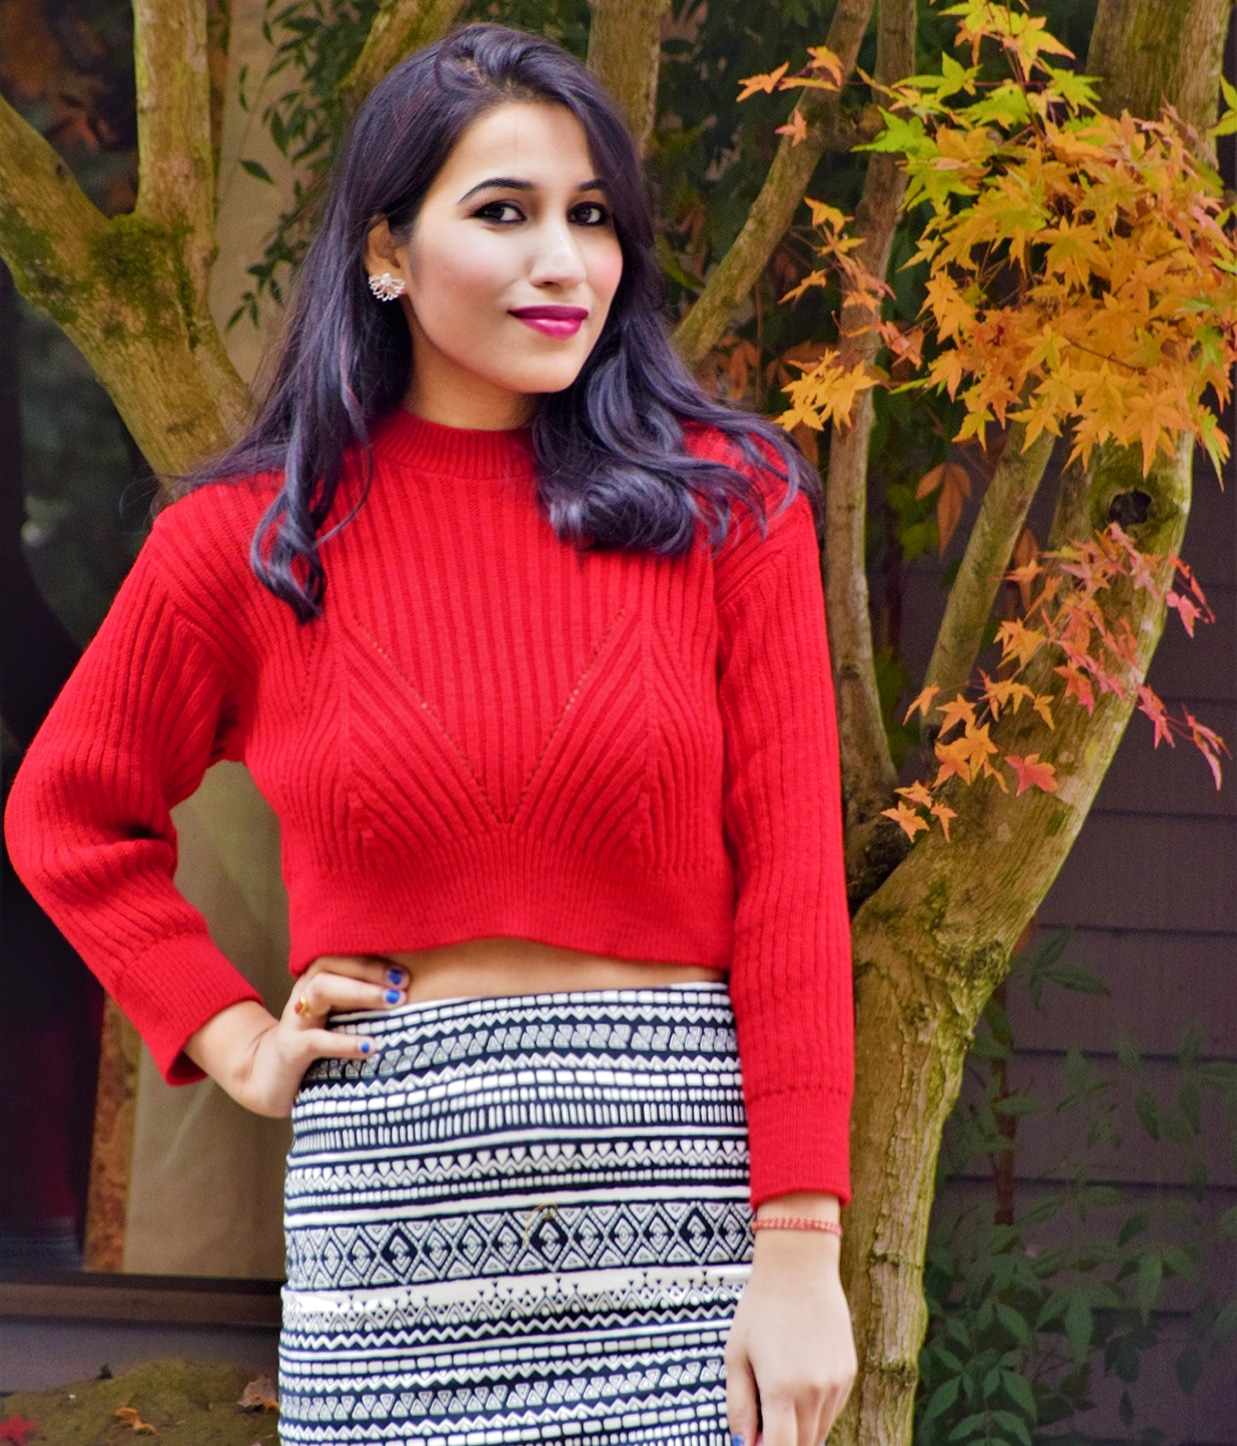 https://femmeluxefinery.co.uk/products/red-cable-knit-cropped-jumper-ivy